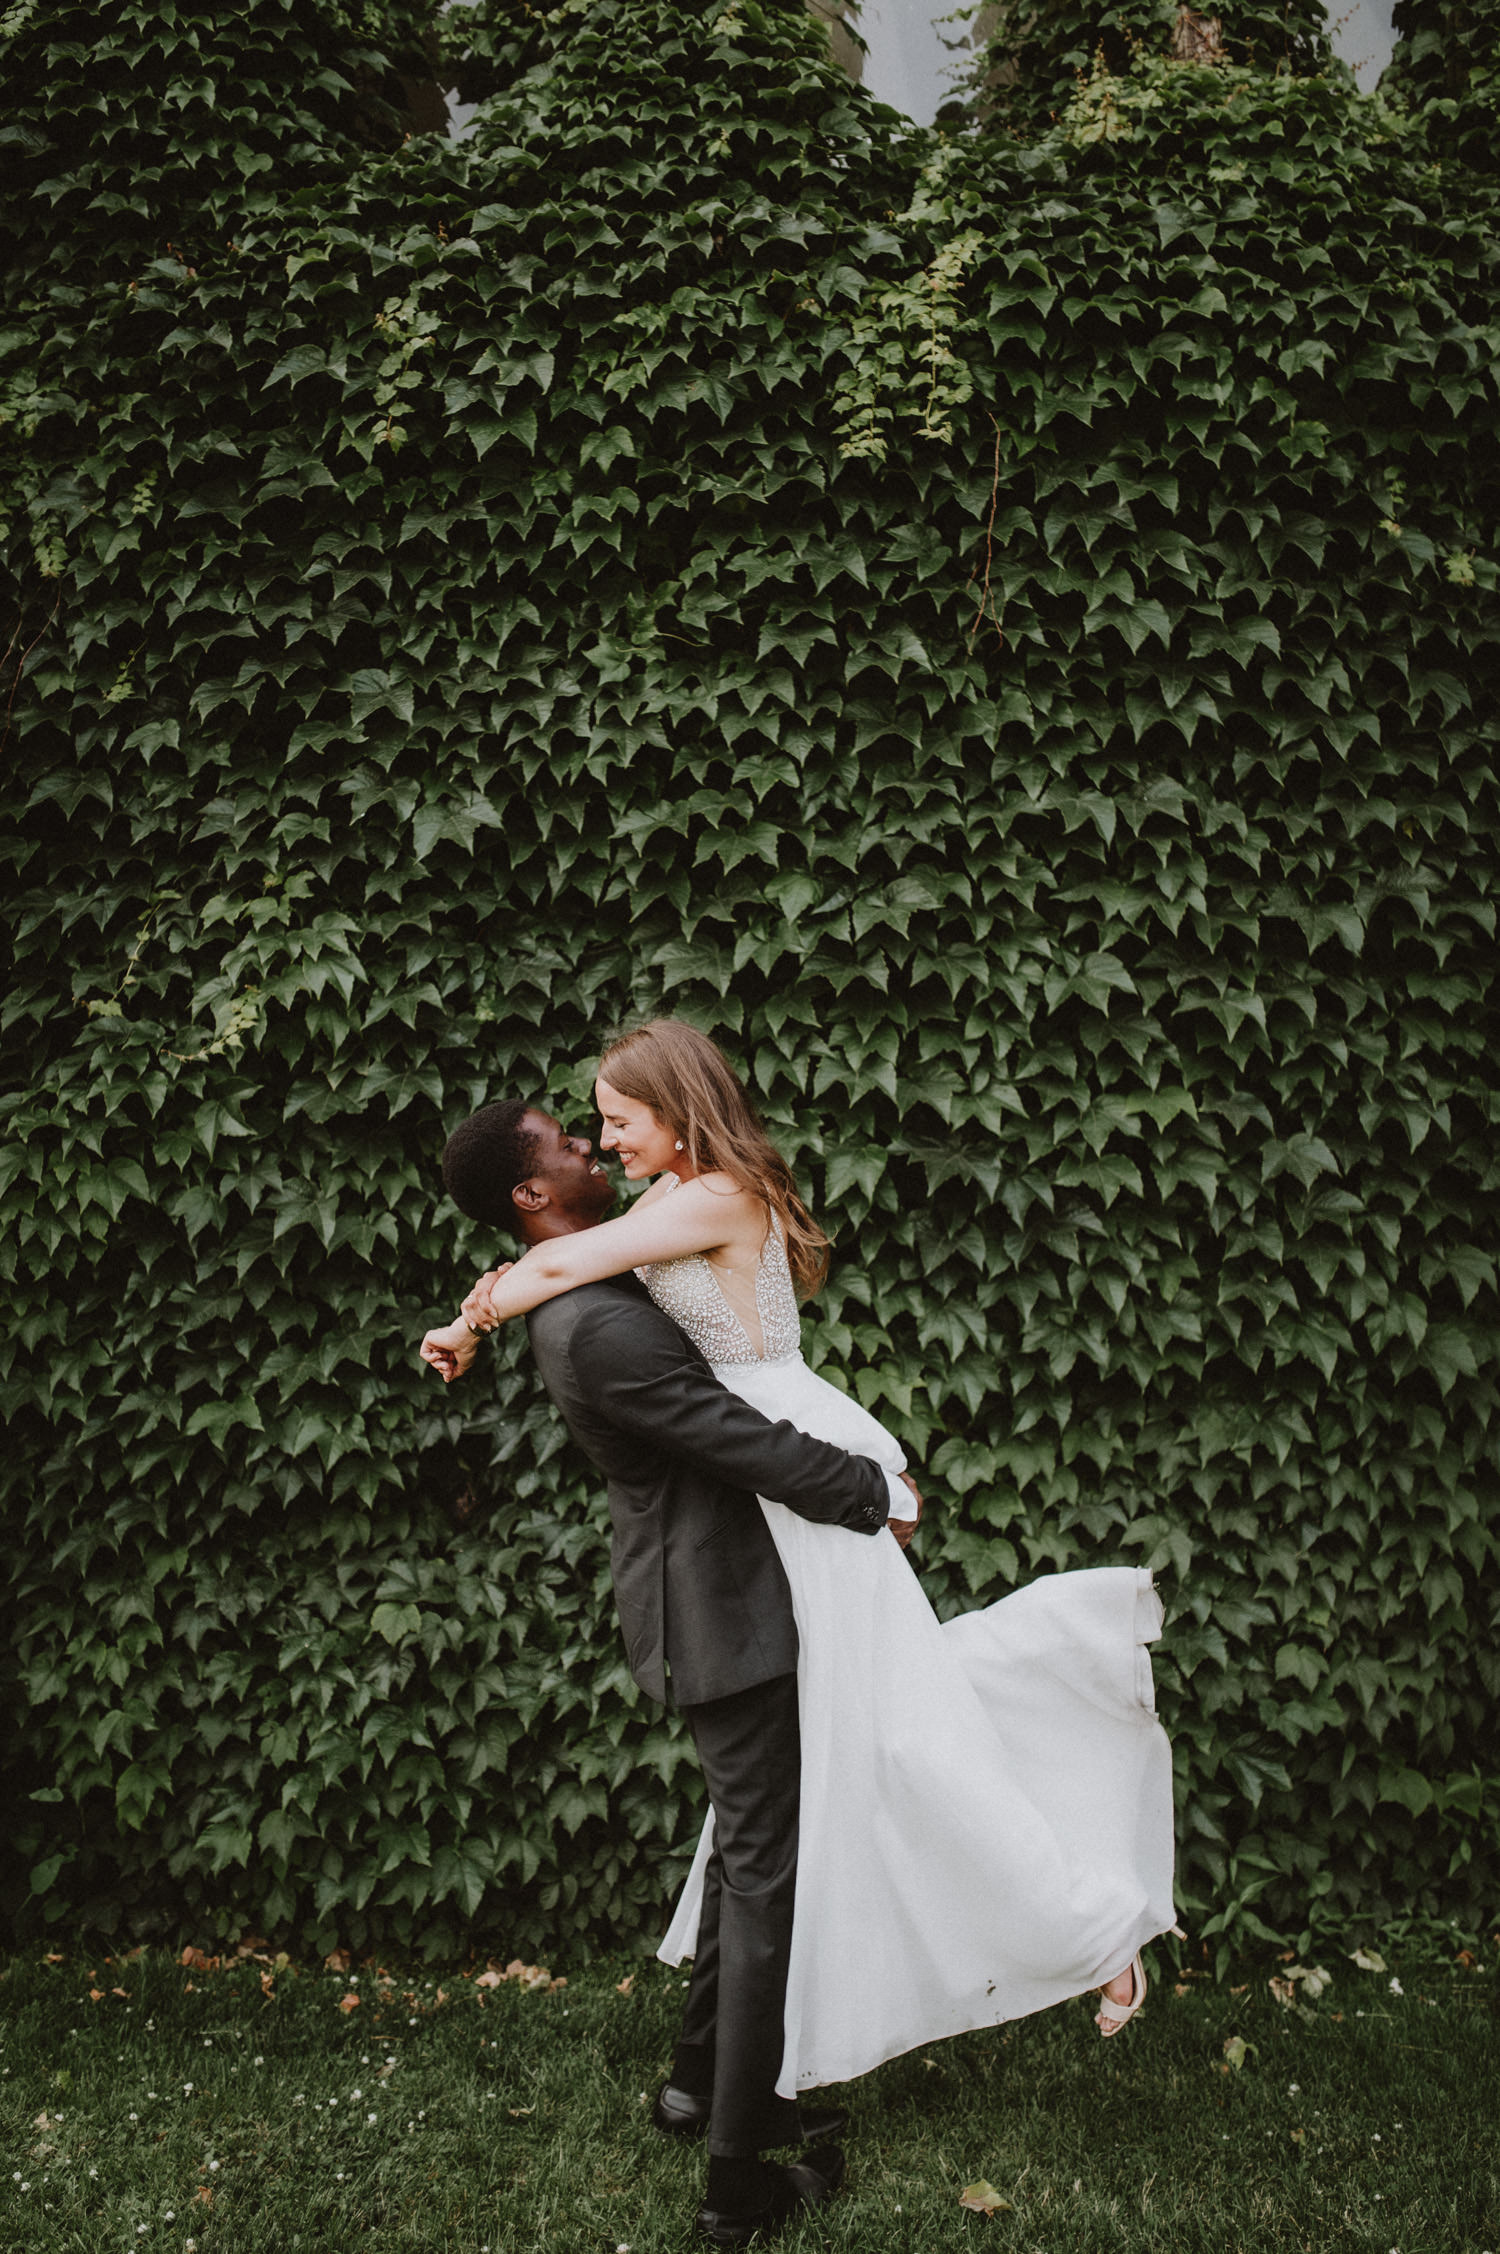 Adorable couple wedding photography at University of Toronto by a wall greeneries